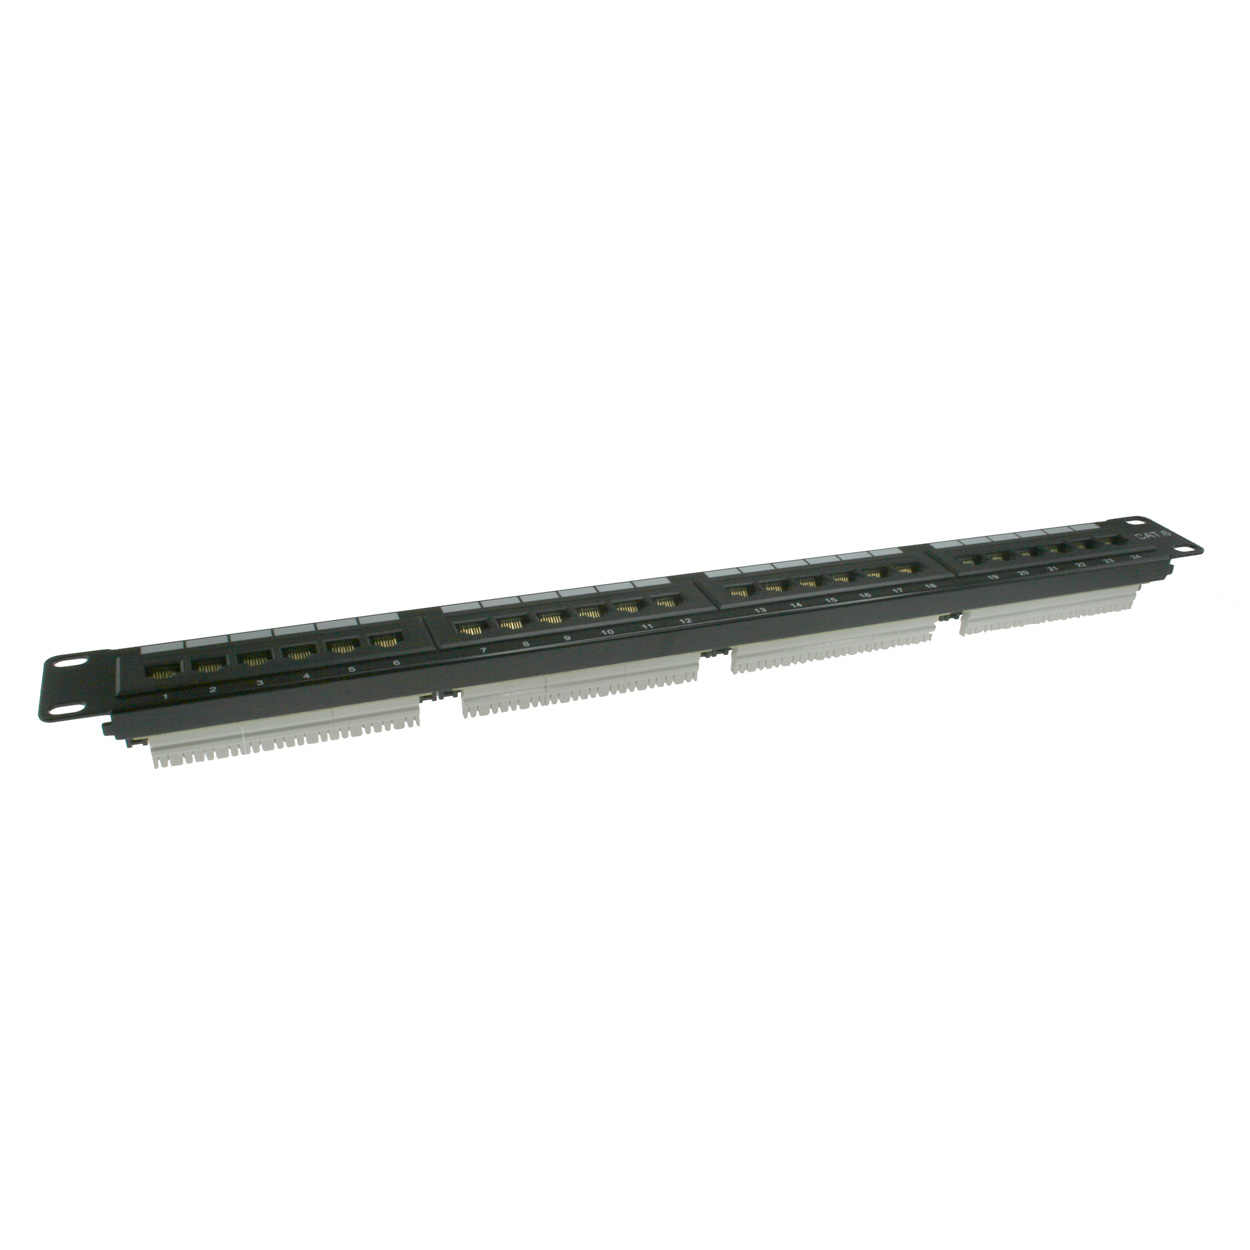 19 inch 1U 24 Port Cat6 Patch Panel, 110 Type, 568A/B